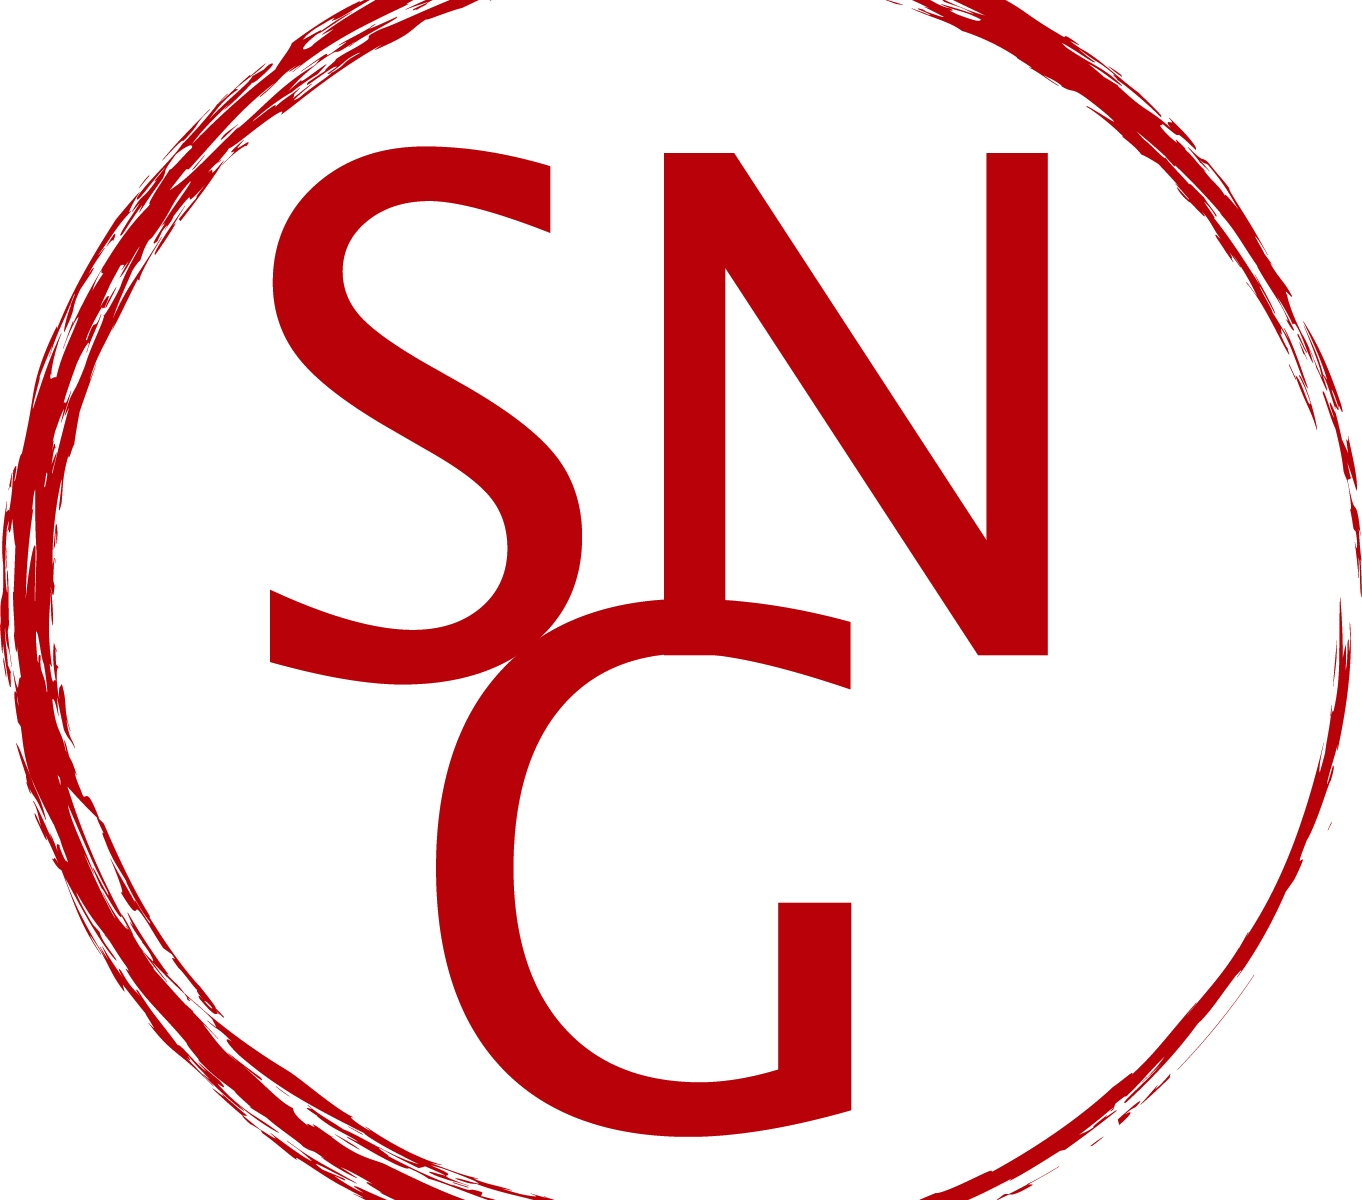 Seward Neighborhood Group logo. Letters SNG in a red circle.